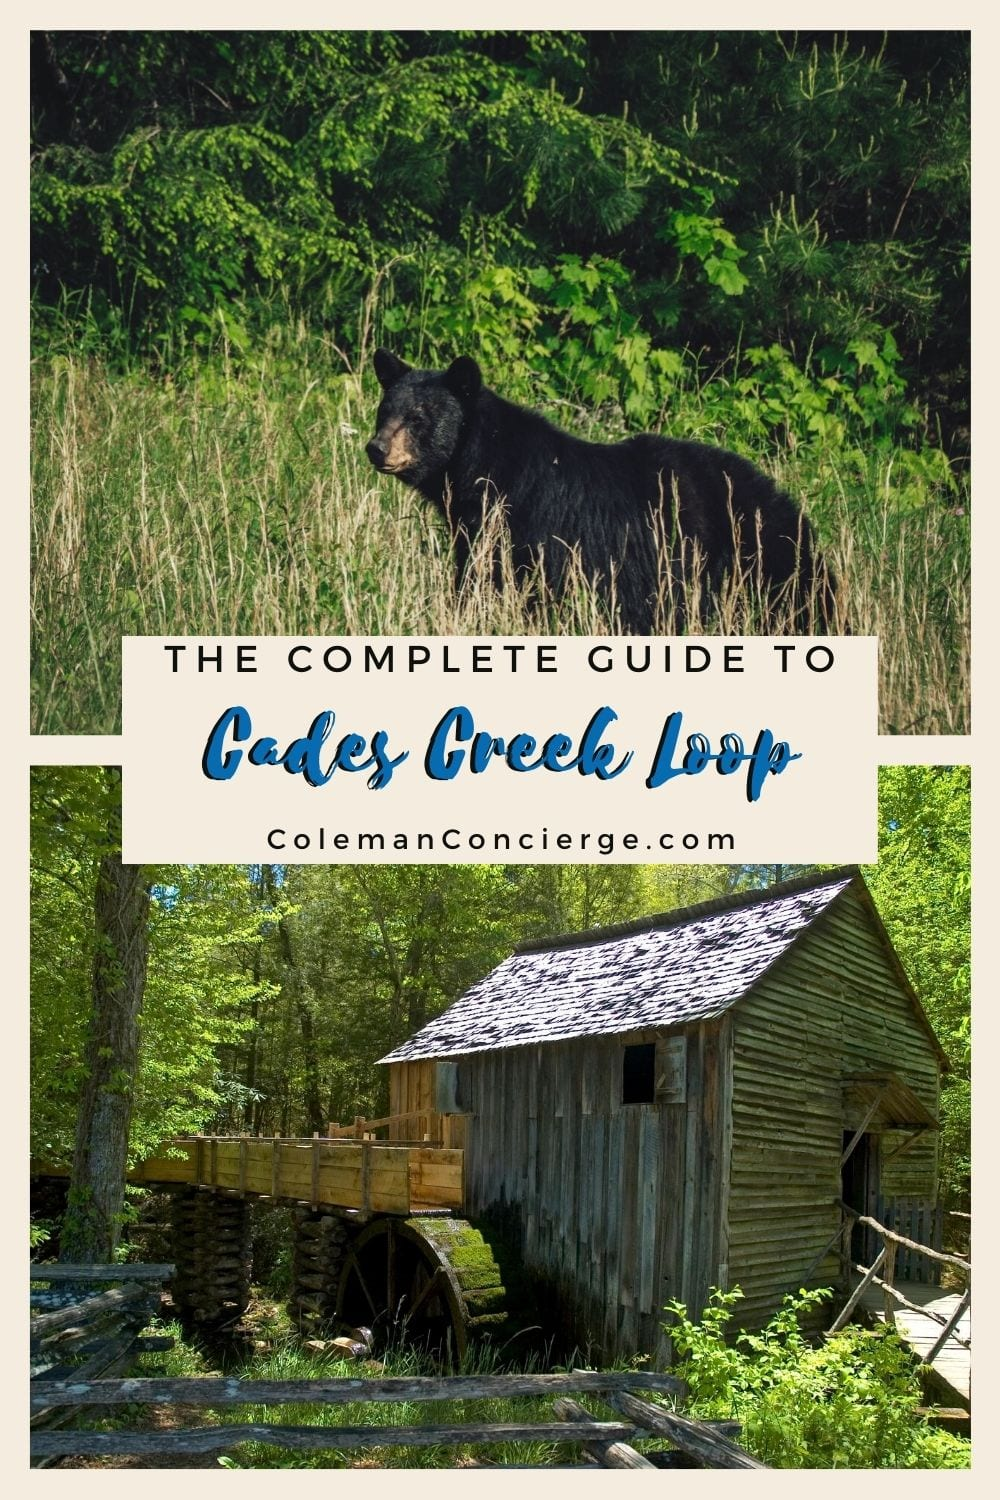 Black bear and historic cabin Cades Cove